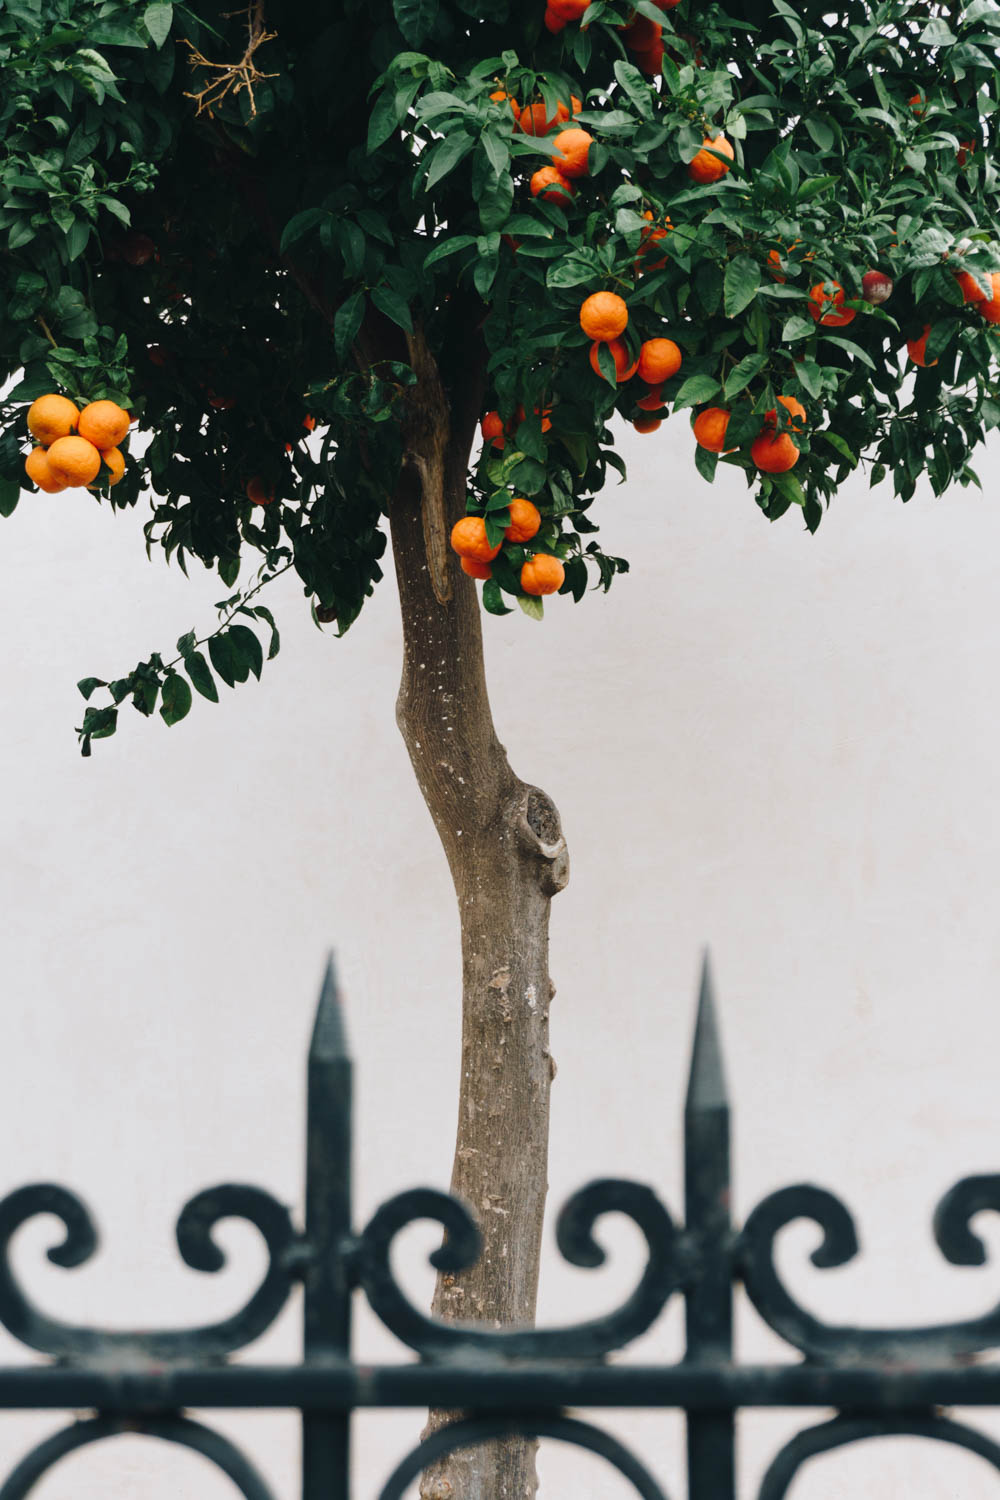 athens greece travel guide plaka orange trees rgdaily blog rebecca goddard